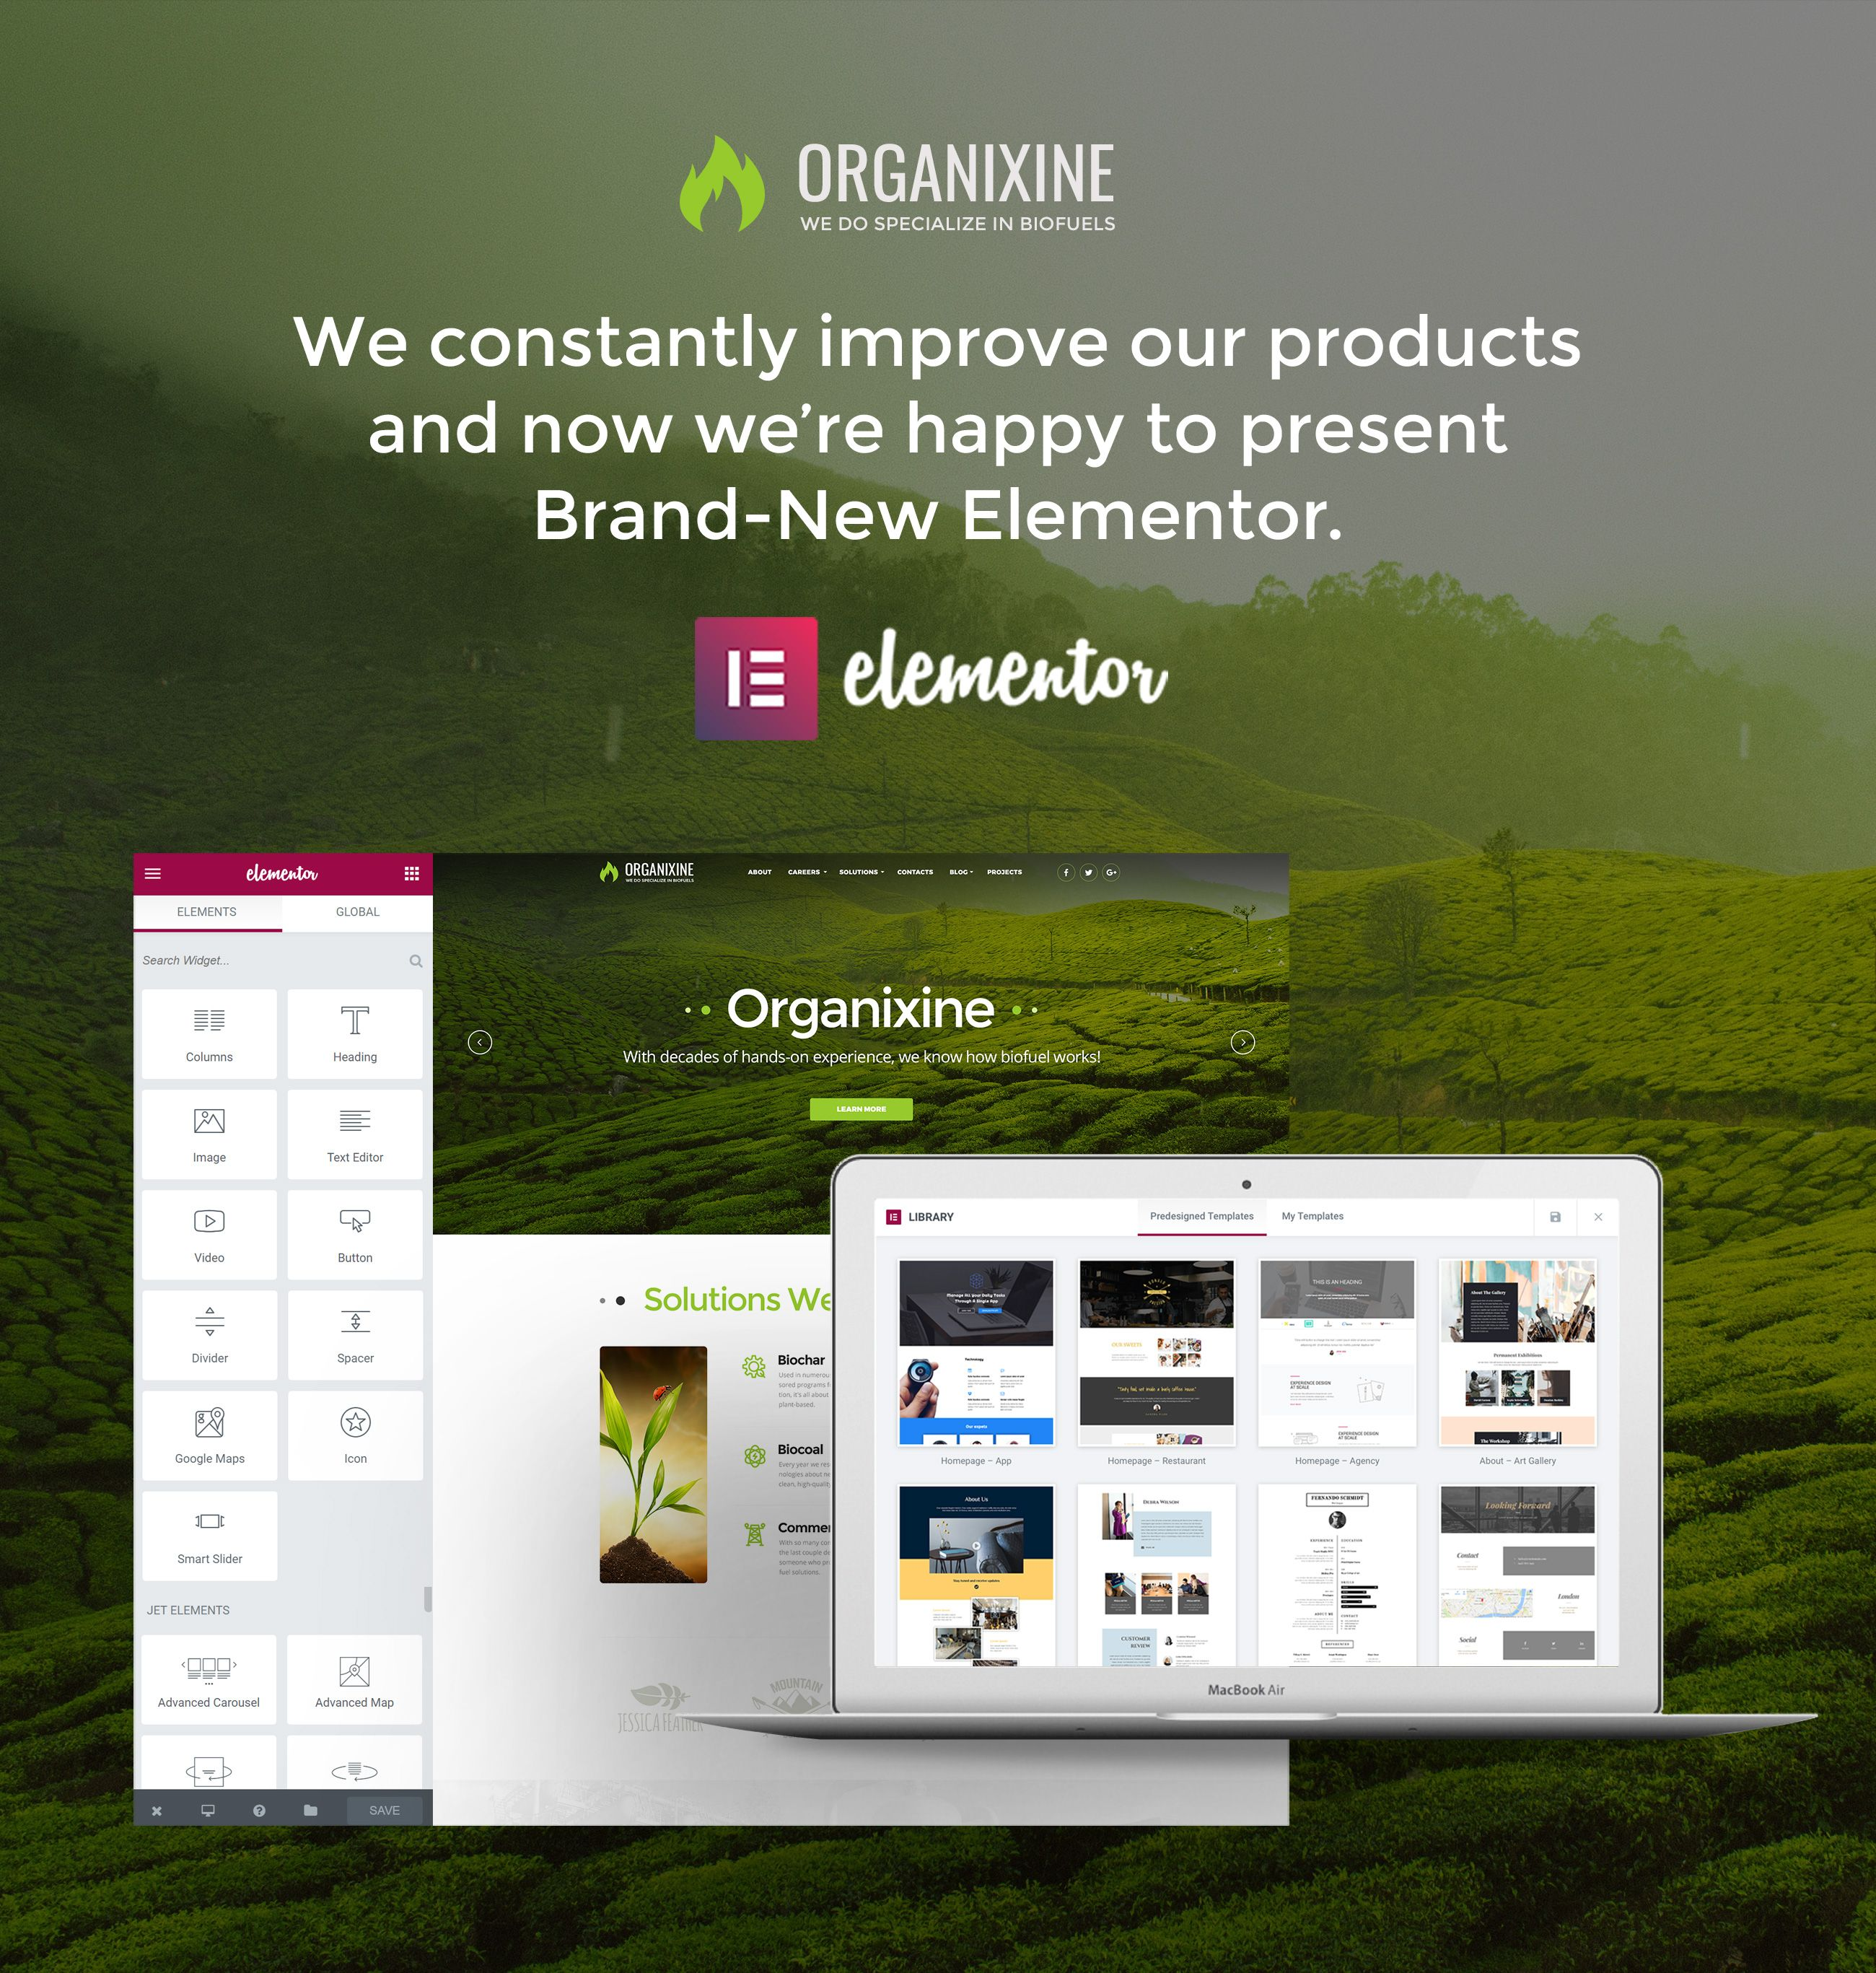 Organixine - Biofuel Company WordPress Theme #alternativeenergy